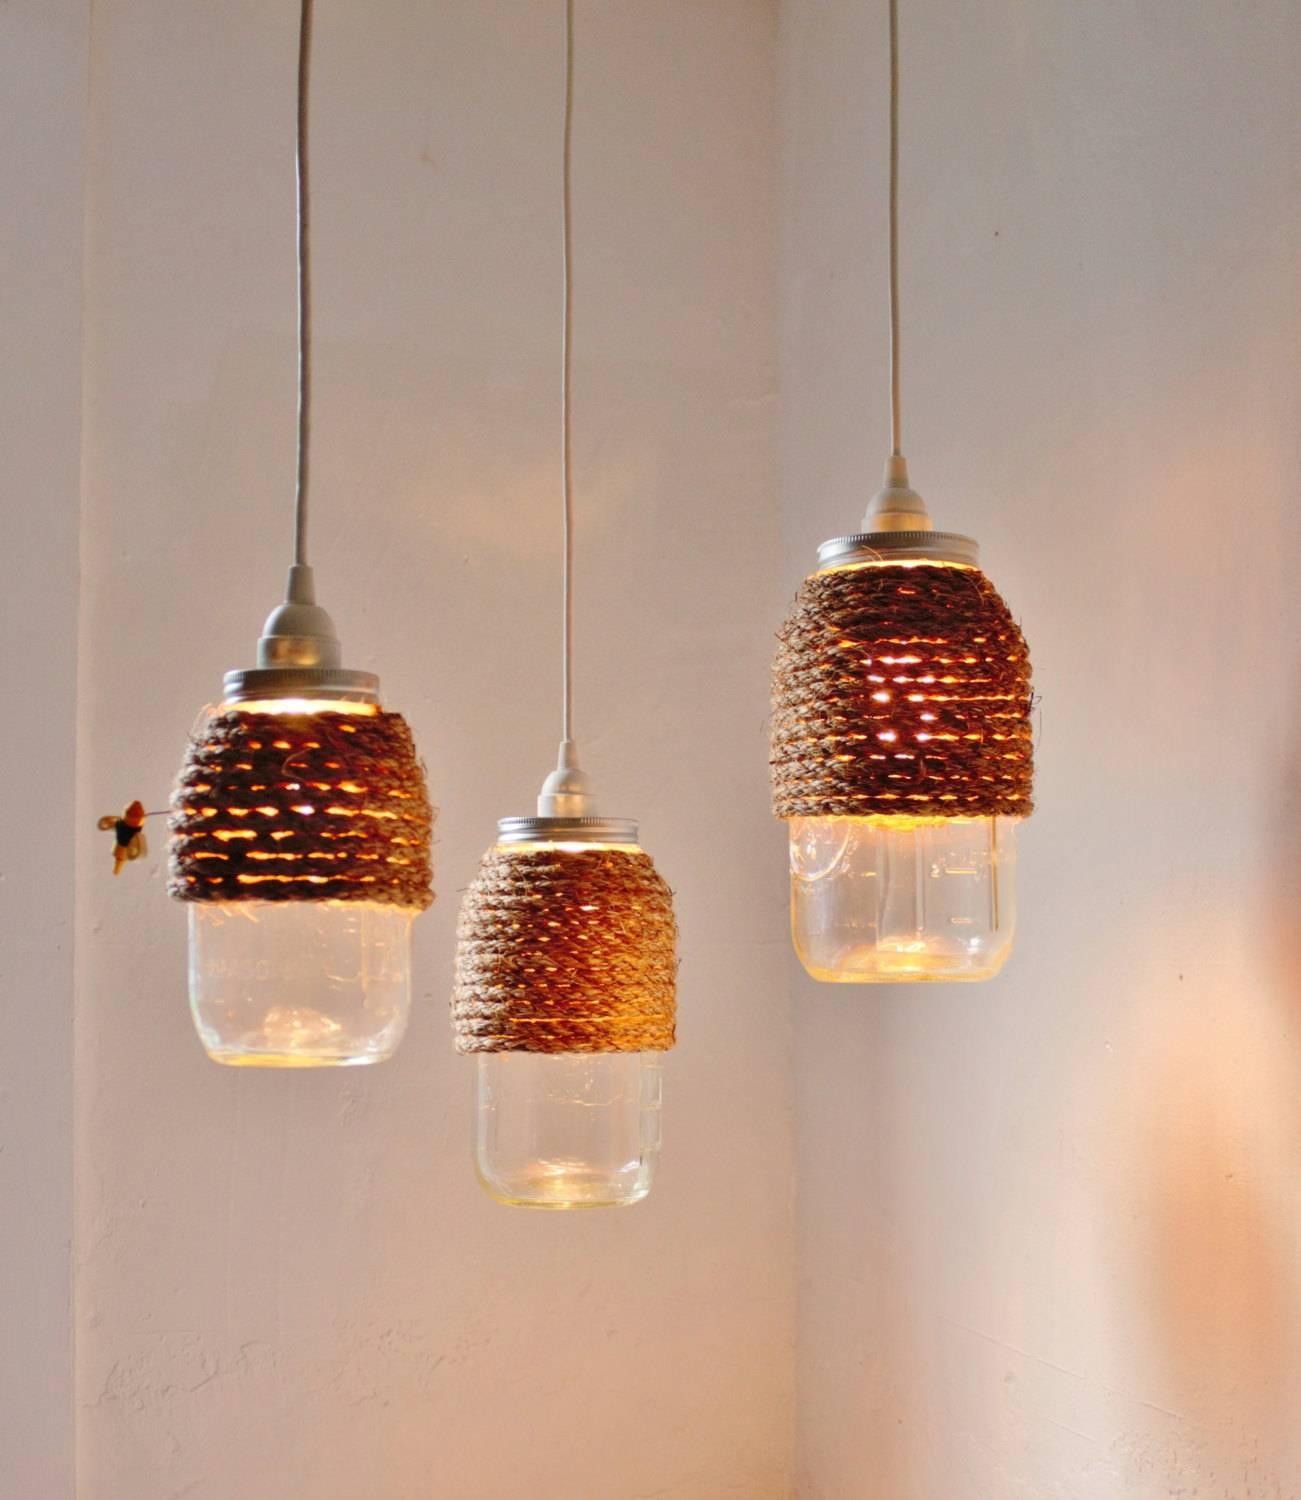 The Hive Mason Jar Pendant Lights Set Of 3 Hanging Lighting With Mason Jar Pendant Lights For Sale (View 8 of 15)